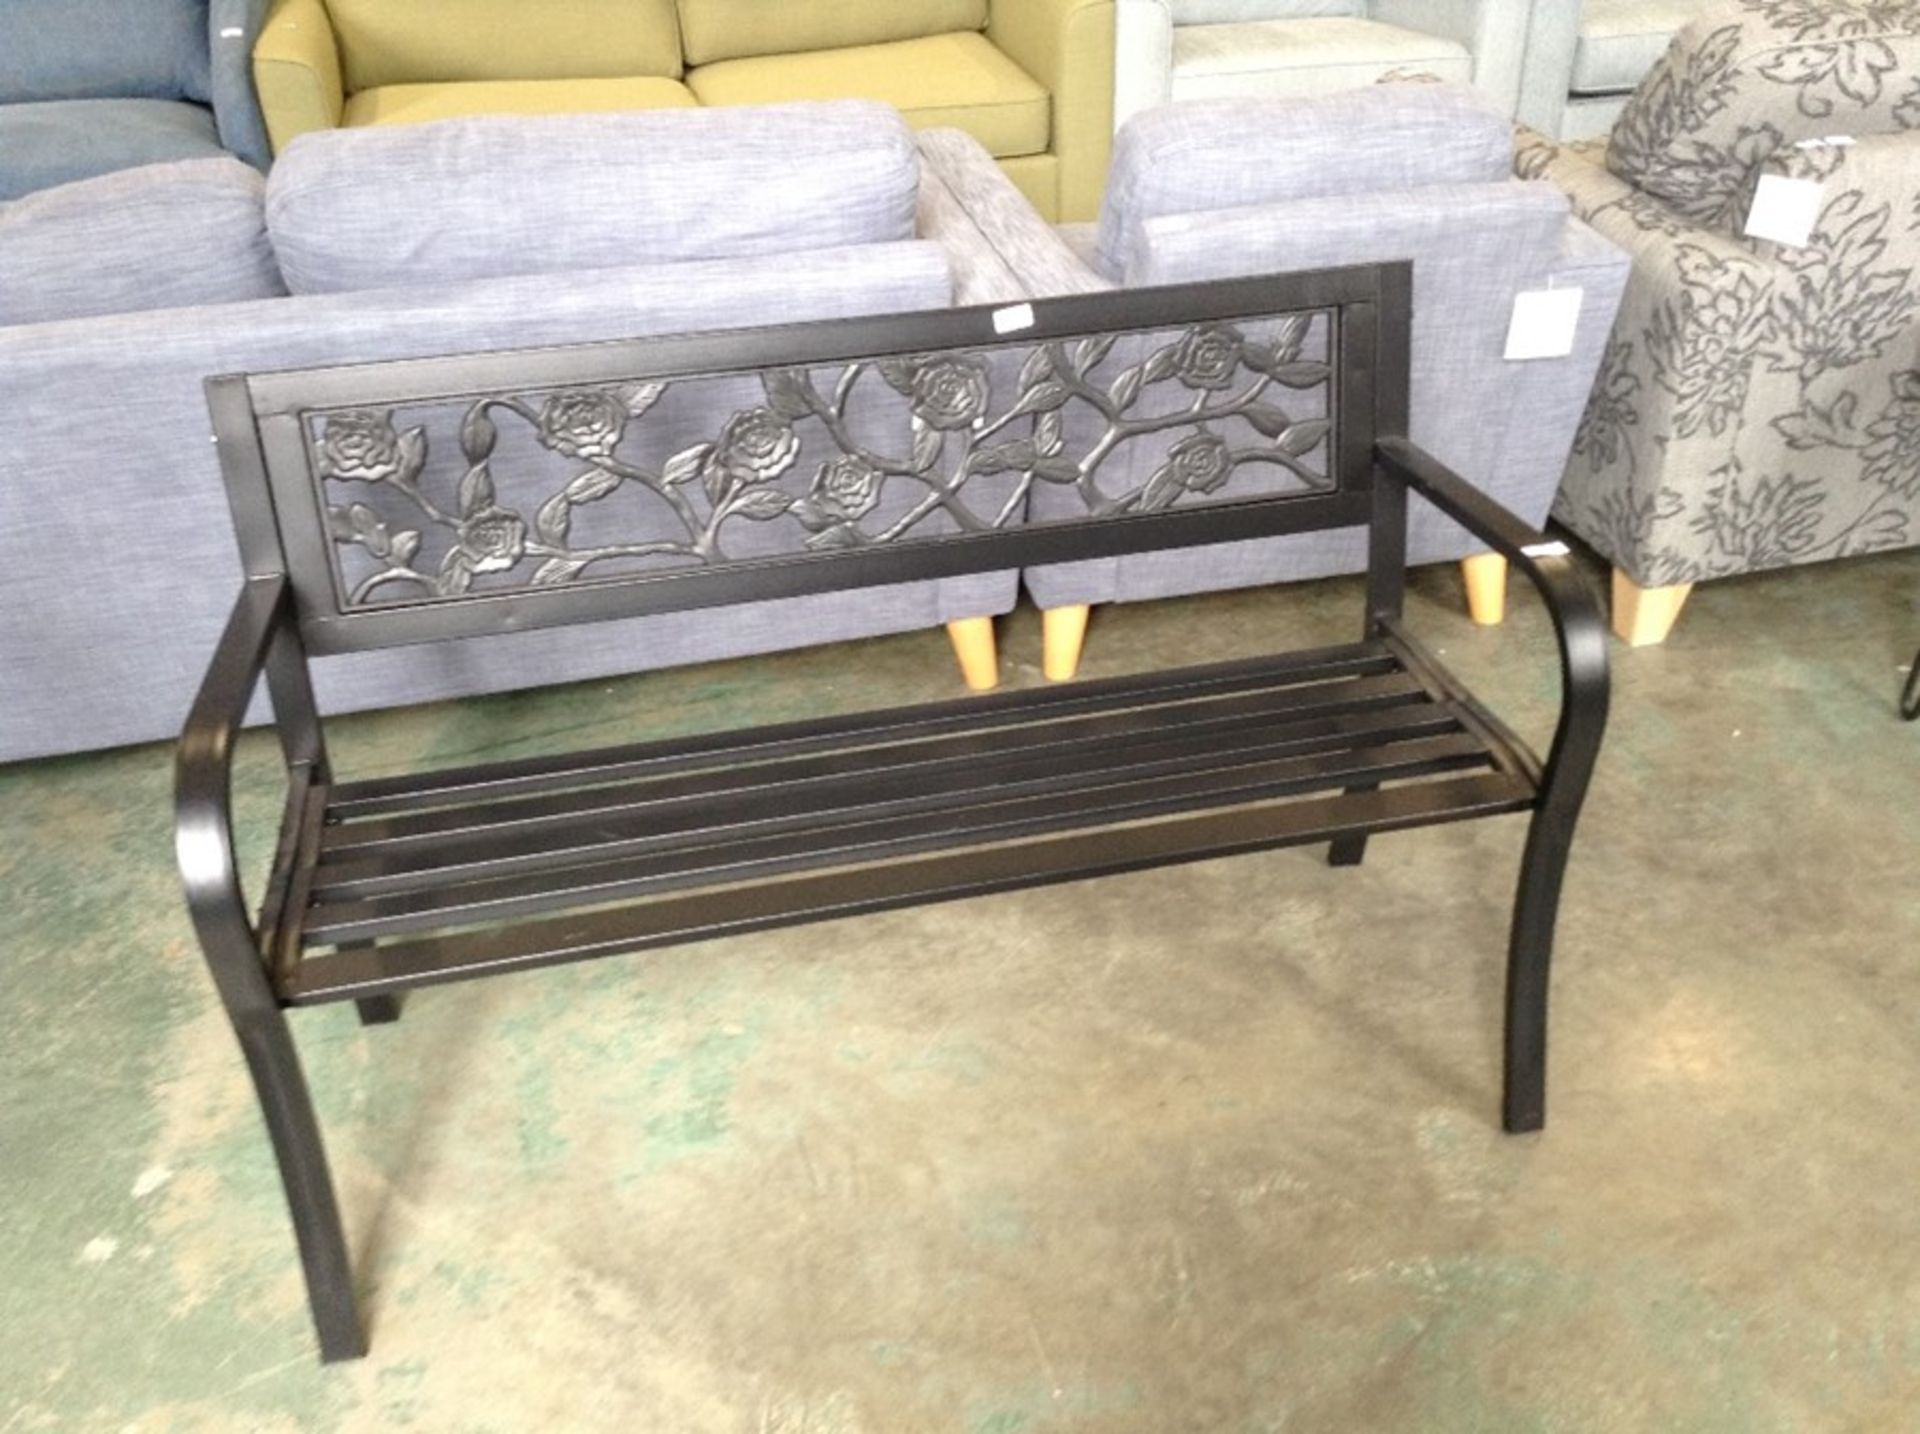 Lot 641 - George Oliver,Arianna Glider Bench RRP -£ 164.99(